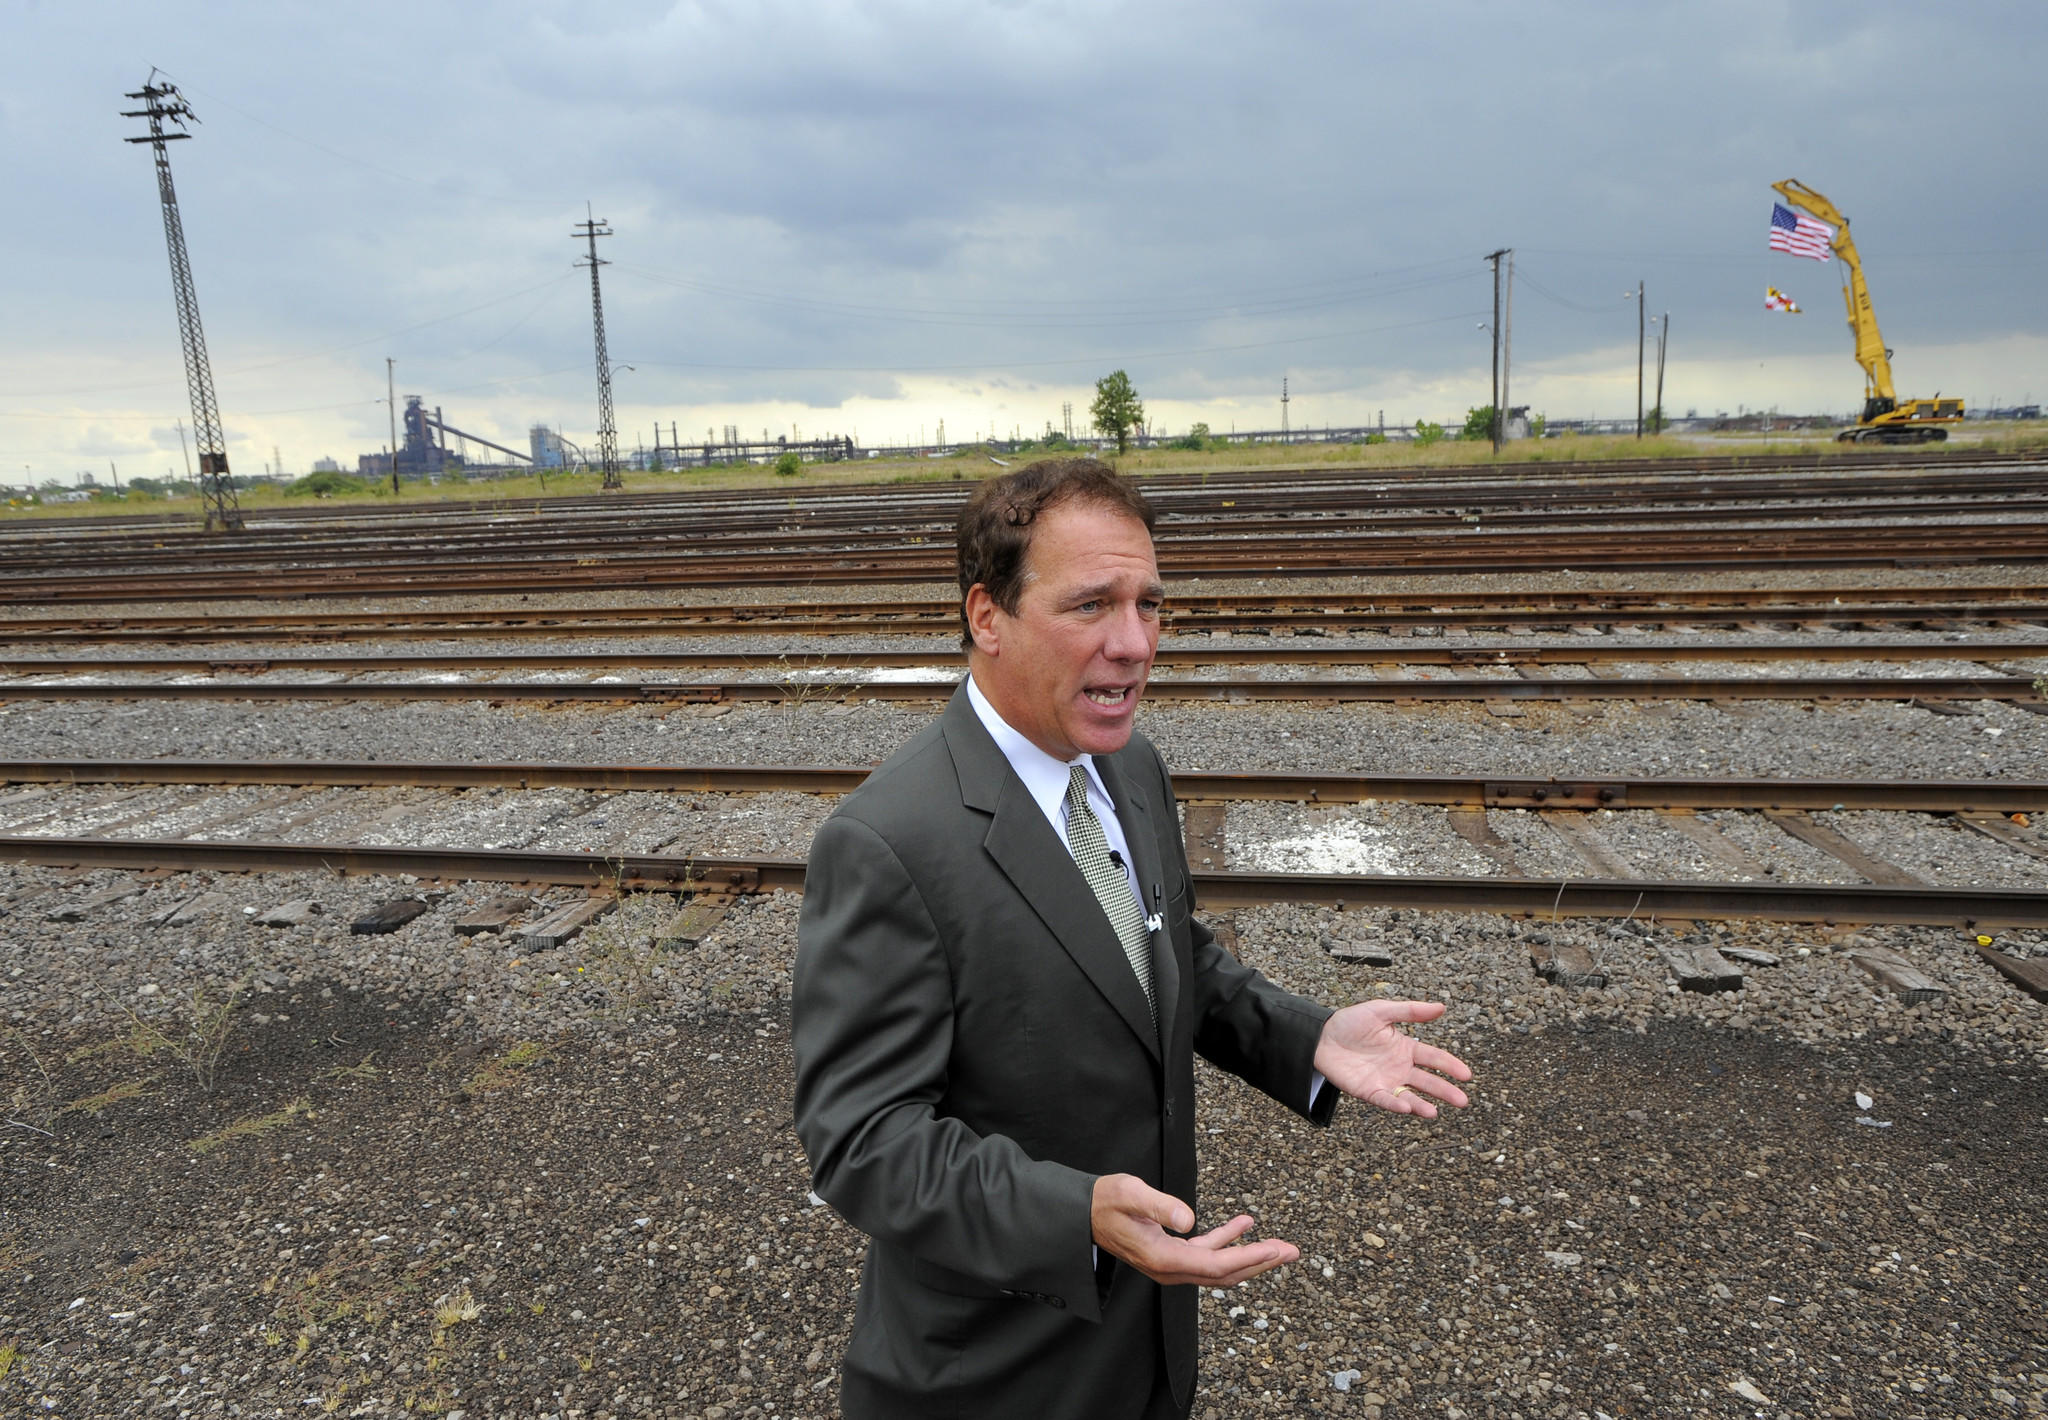 Baltimore County Executive Kevin Kamenetz speaks about the sale of Sparrows Point steel mill property.